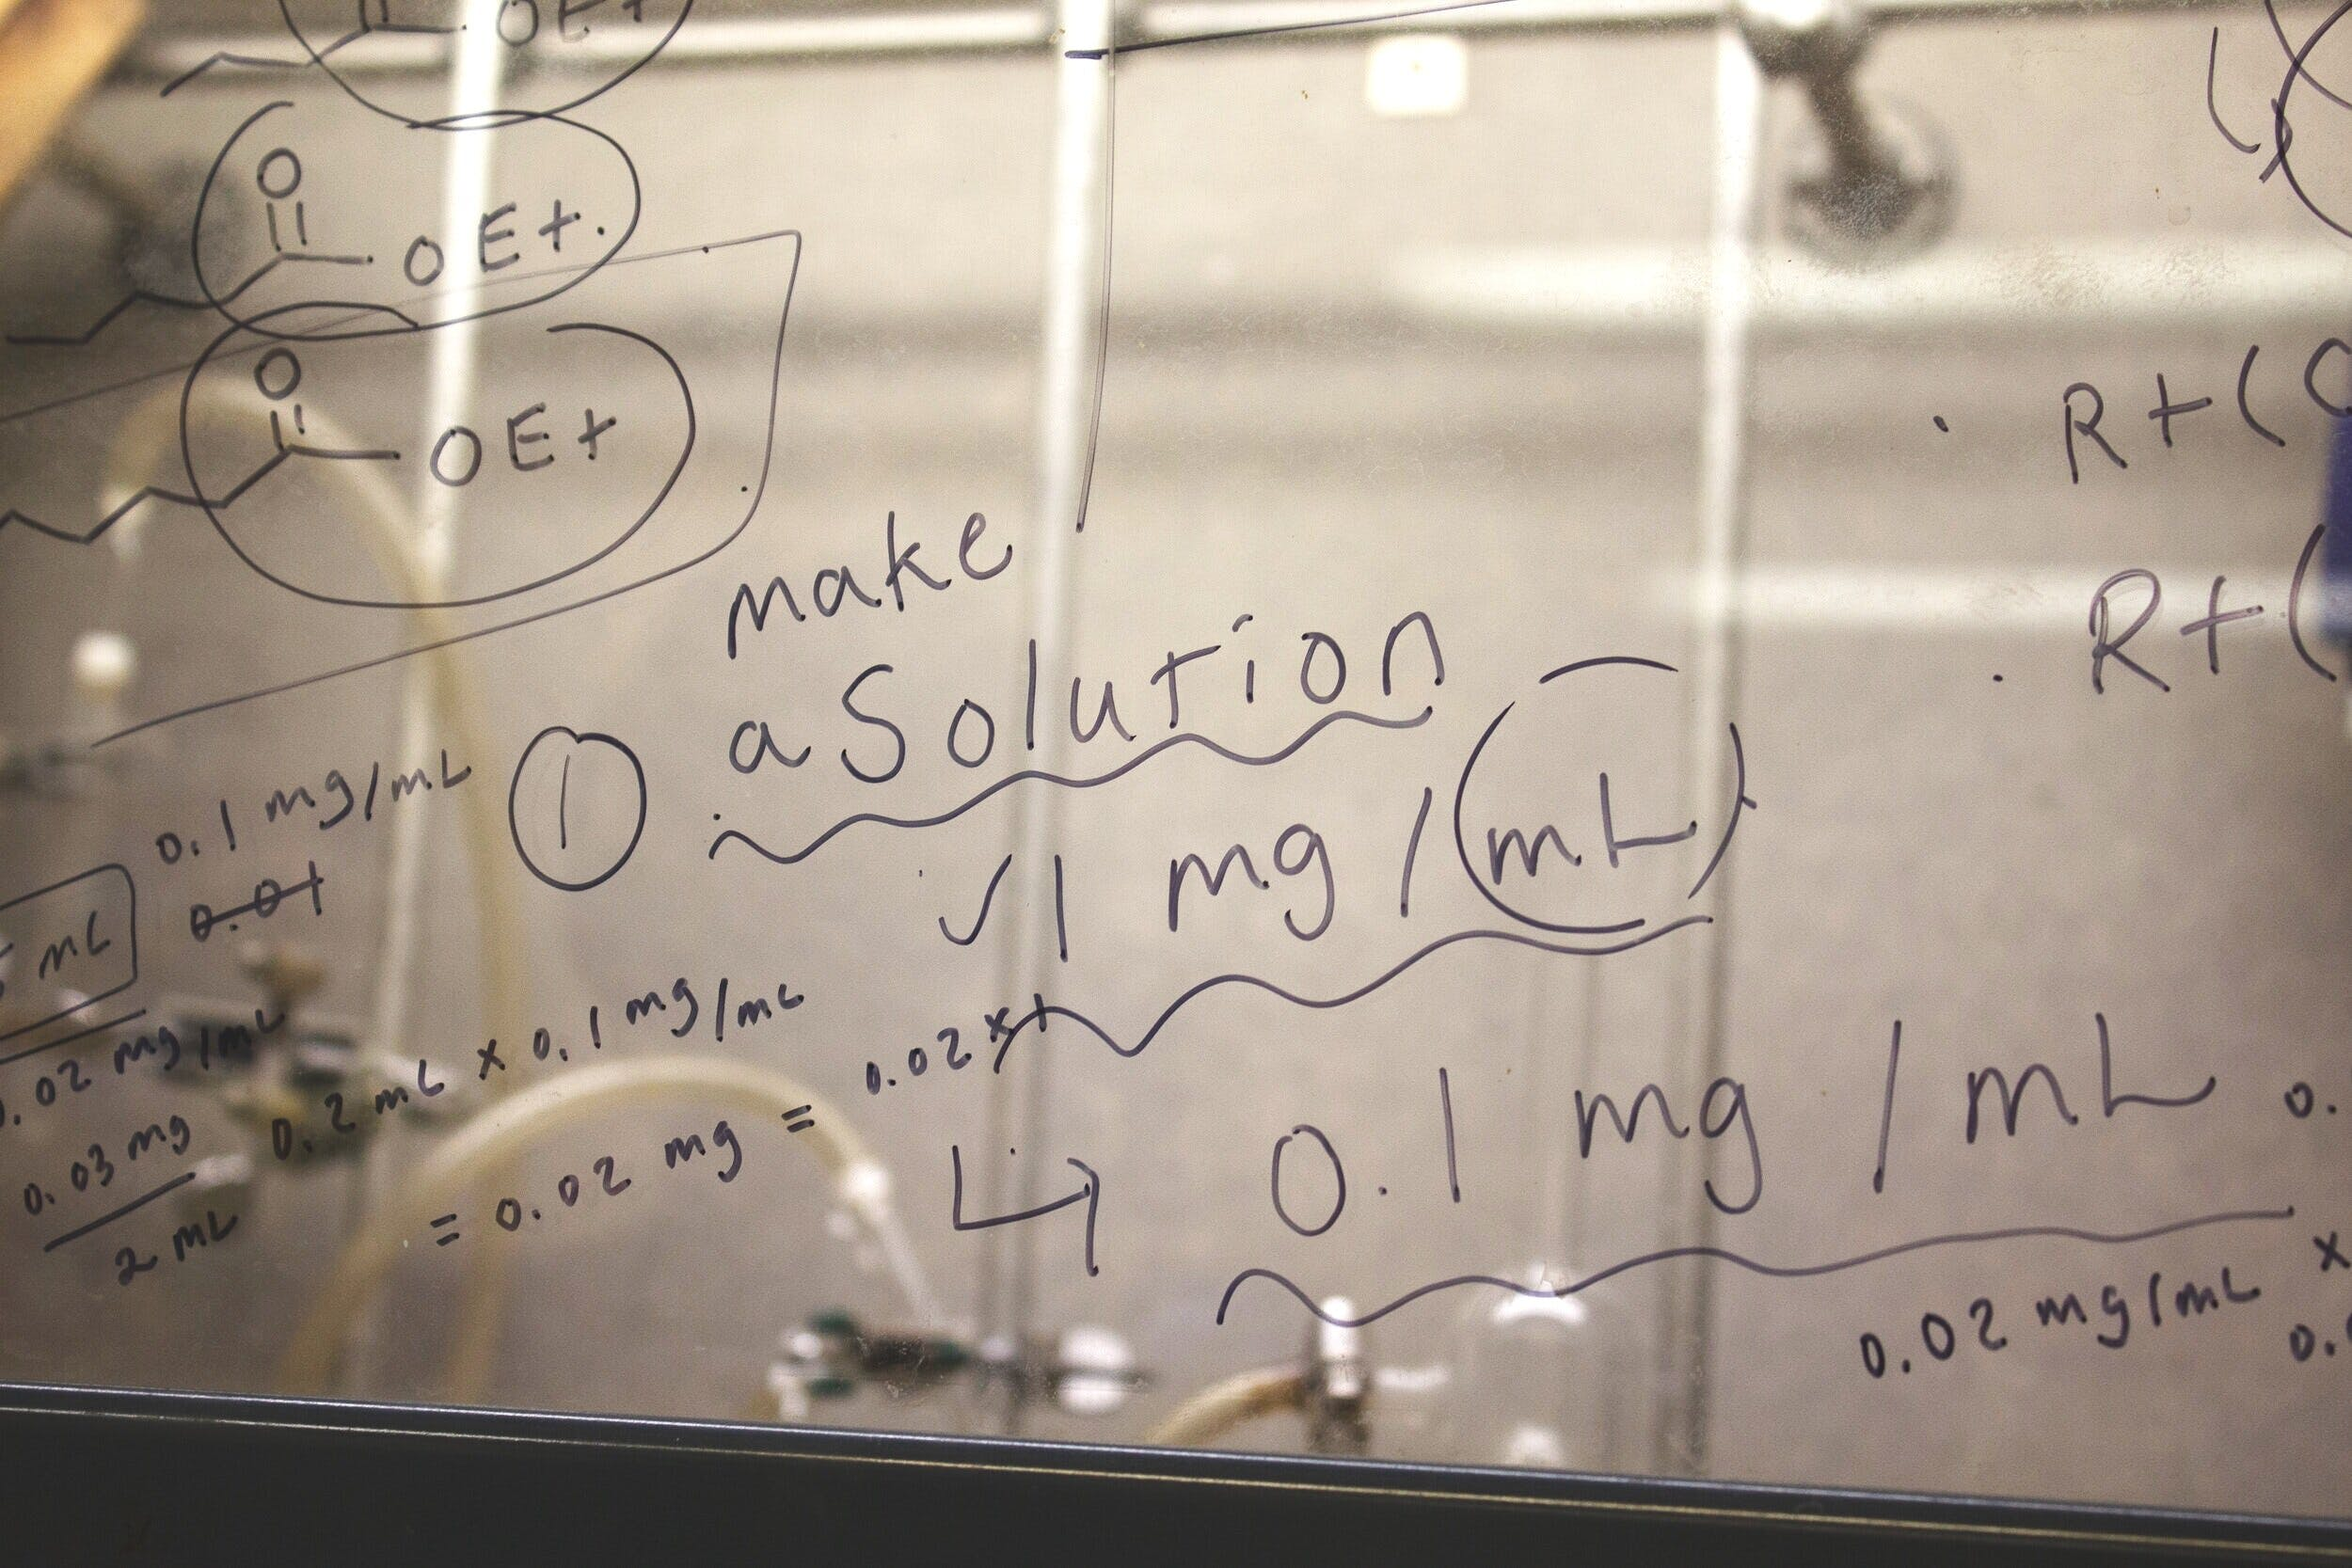 Some notes on a laboratory protocol written on a marker board.